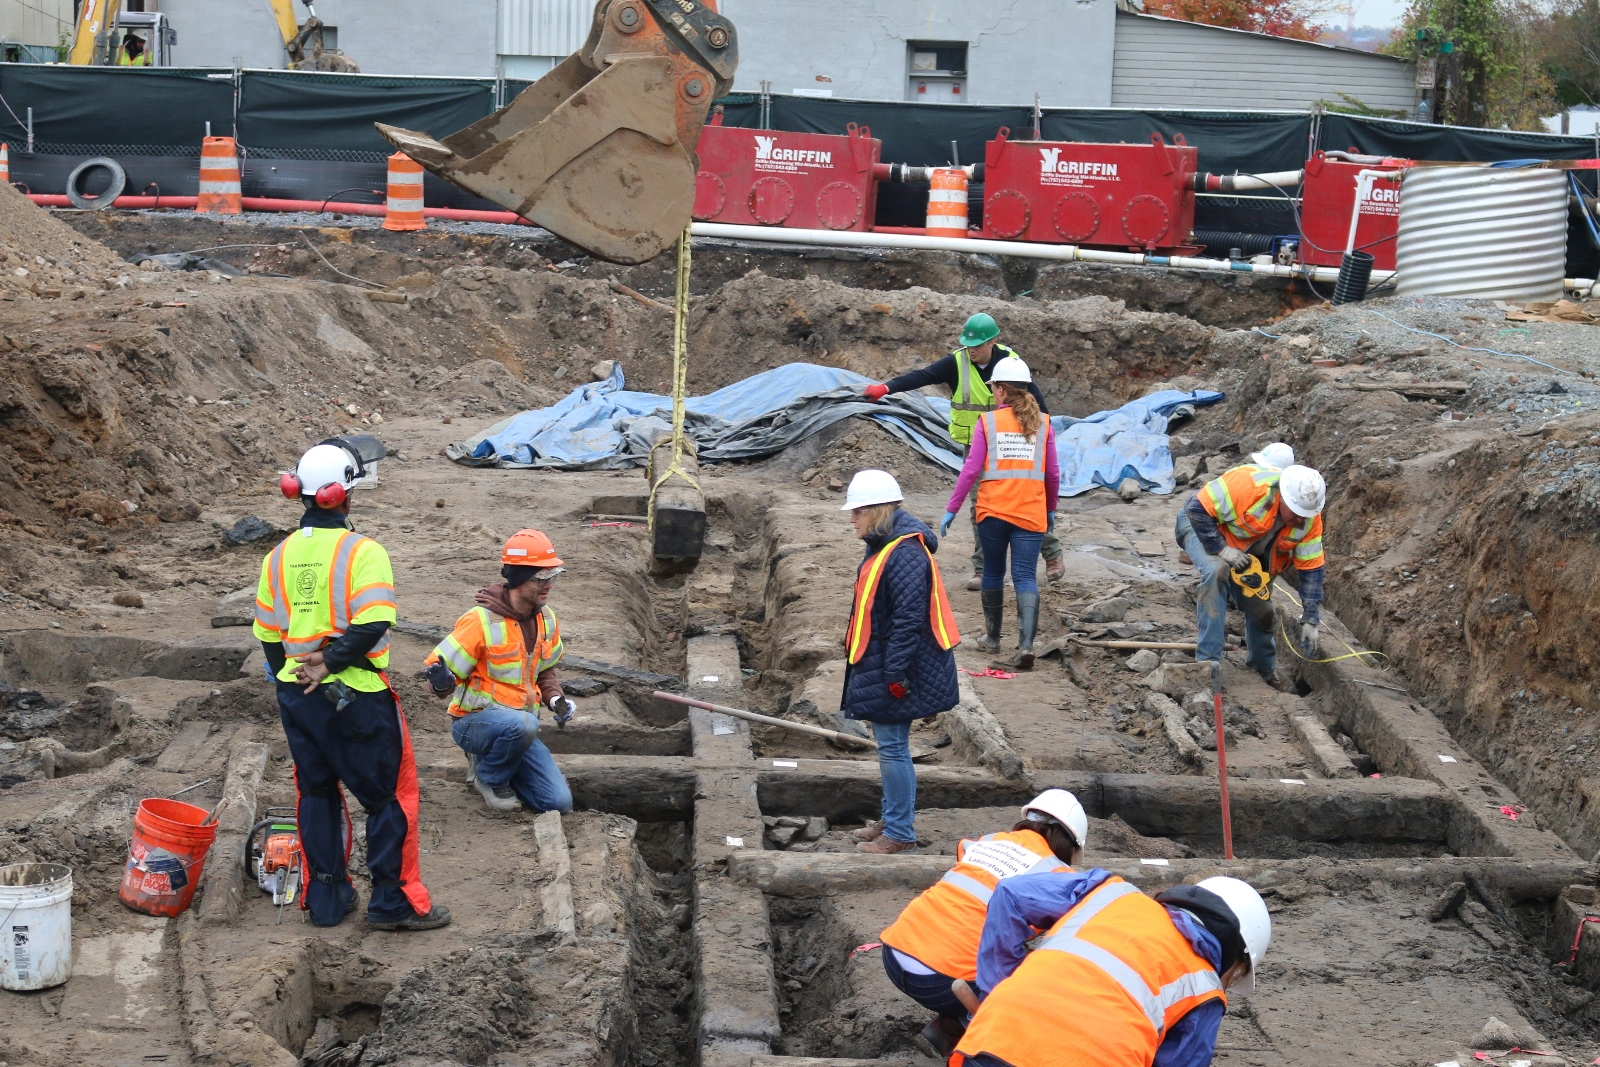 Our archeologists assisted City of Alexandria archeologists and conservators from the MAC Laboratory with removing the remnants of the warehouse for preservation. After the beams were cut into 12 foot sections, they were lifted with a backhoe onto a flatbed trailer for transport.